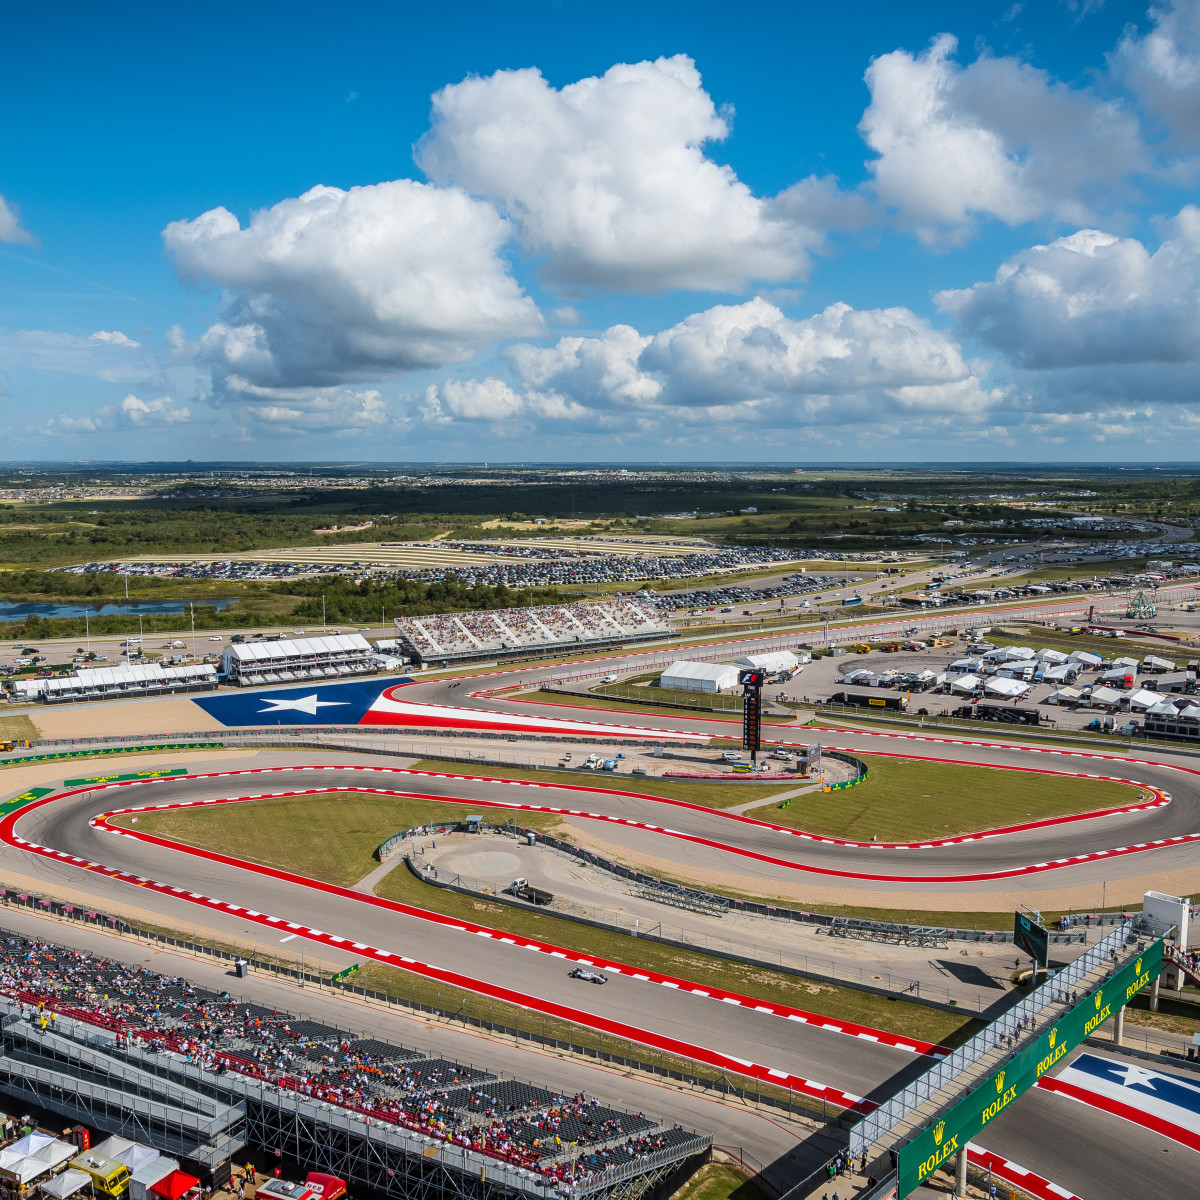 Circuit of the Americas track